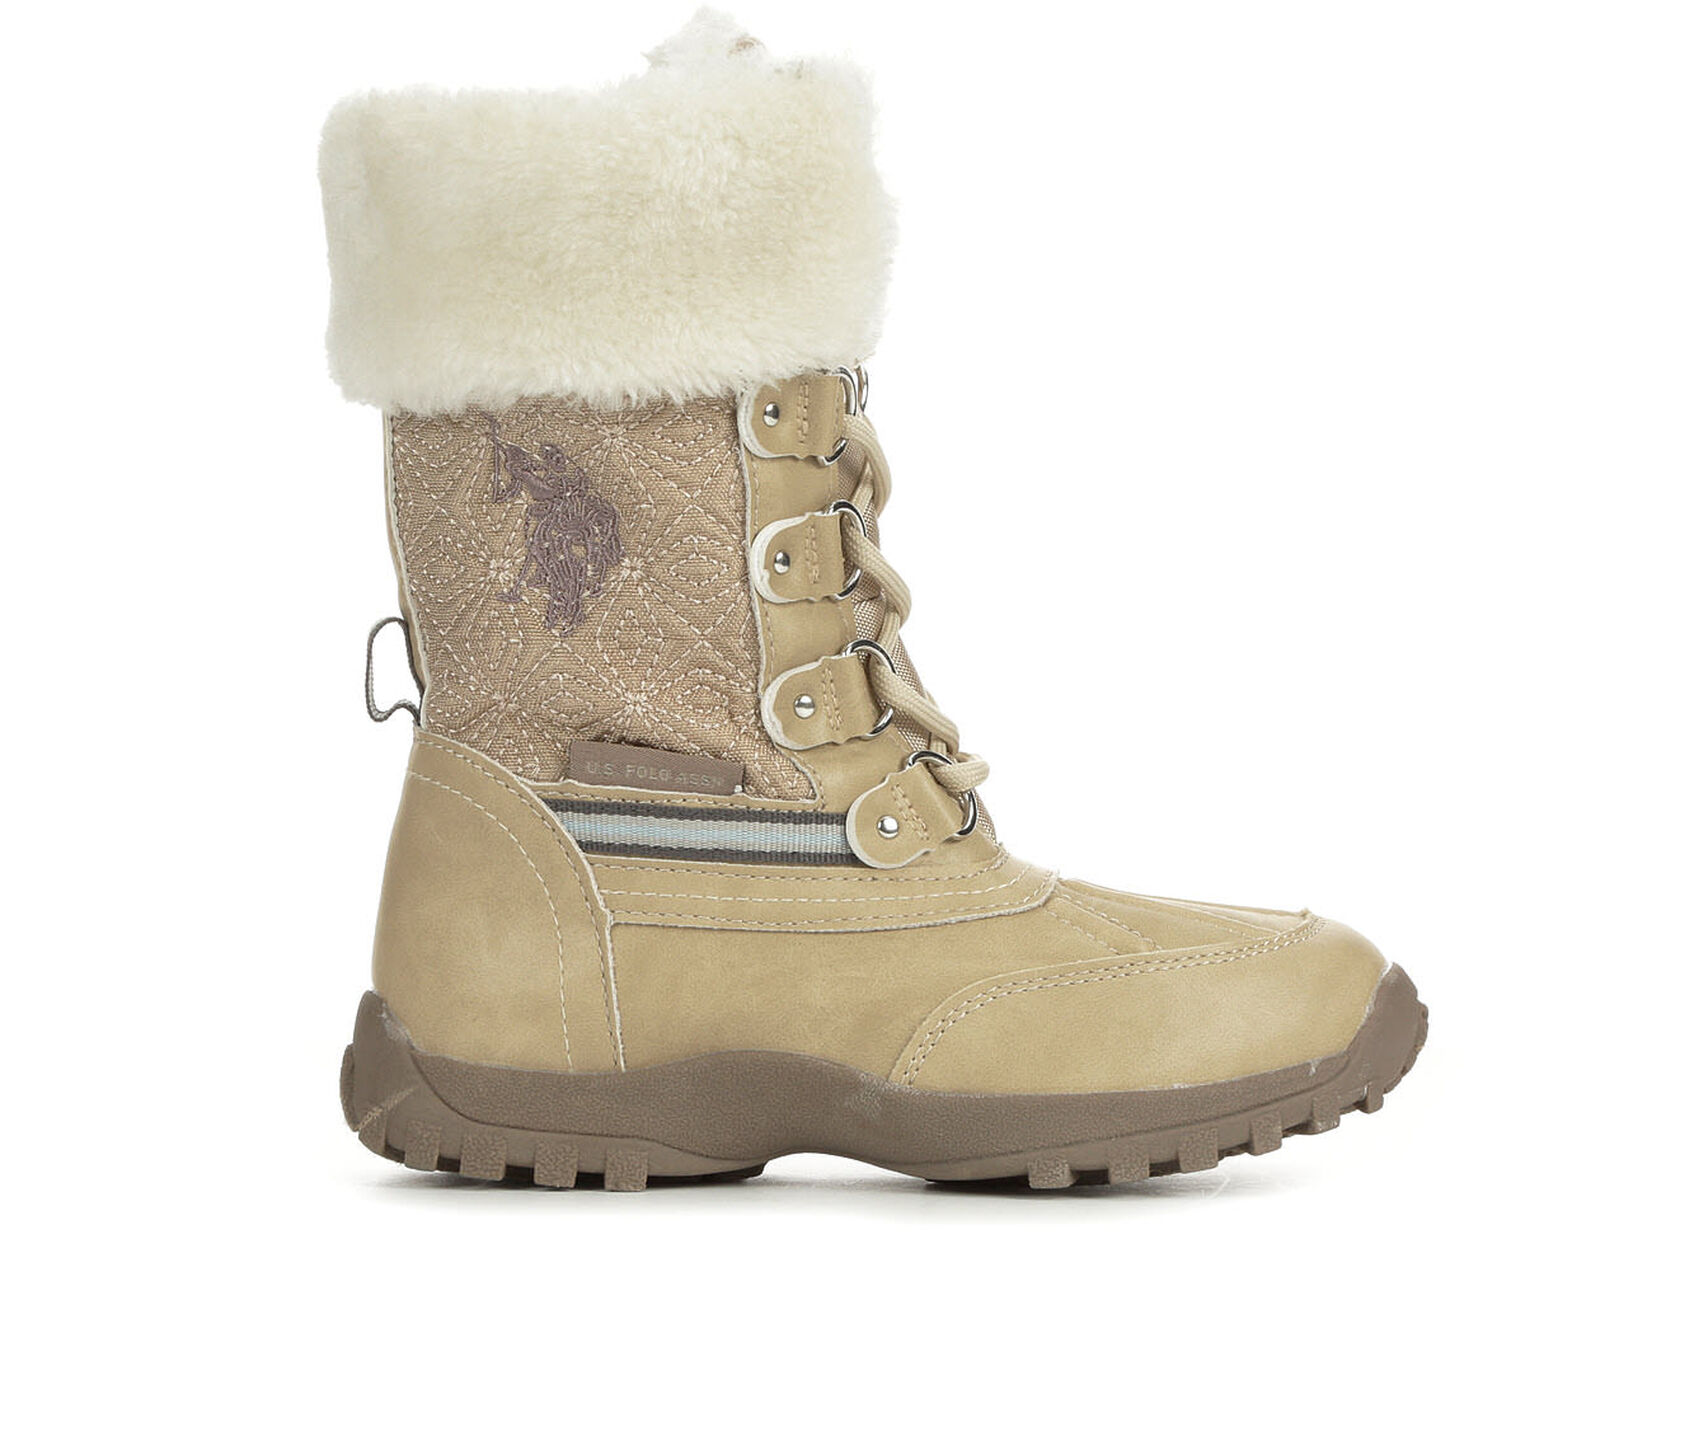 2a434a2a6be Us Polo Assn Boots - The Best Boots In The World